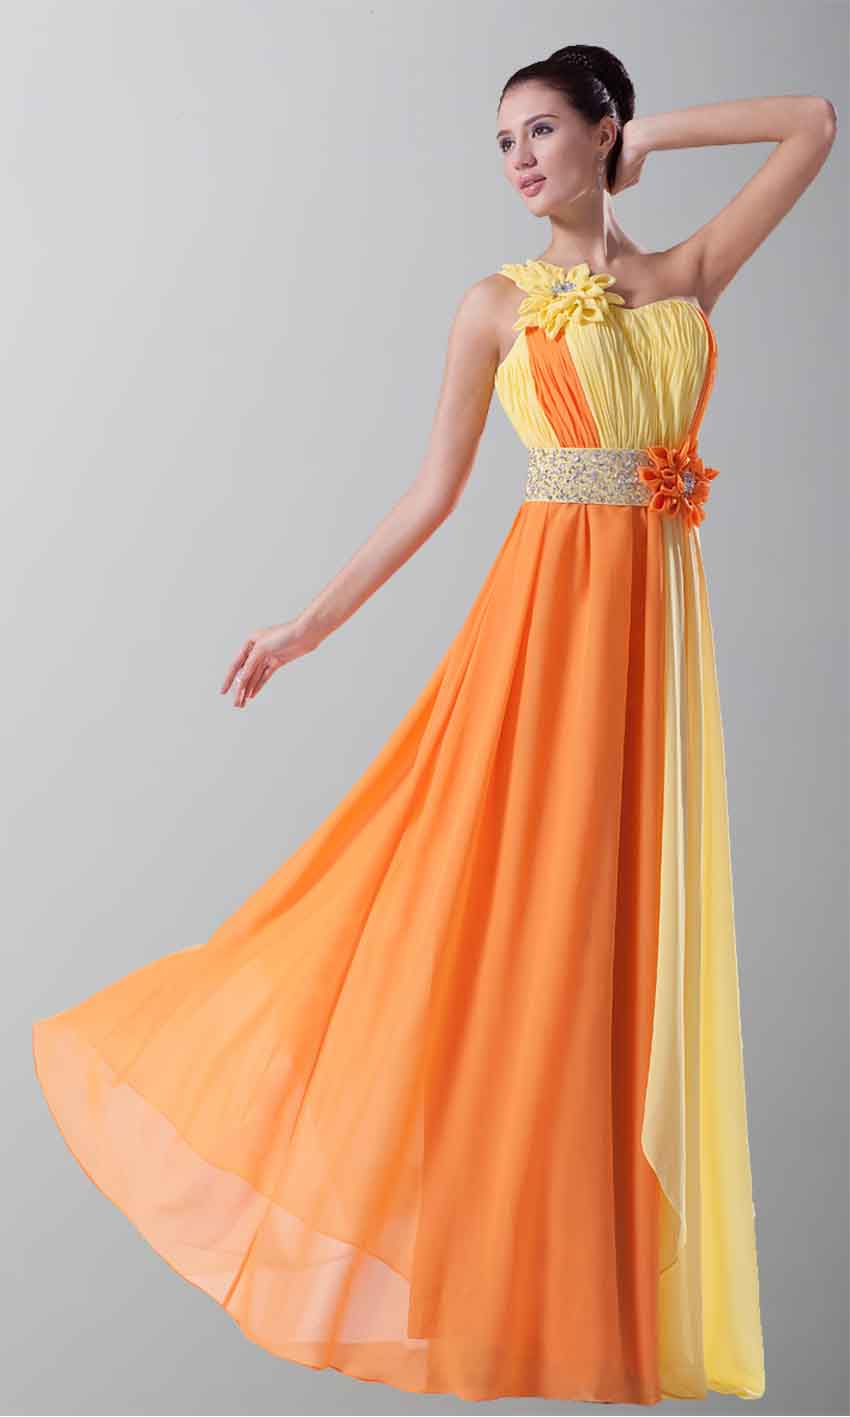 Bright Contrast Color Sequin Flowing Prom Dresses KSP217 [KSP217] - £92.00 : Cheap Prom Dresses Uk, Bridesmaid Dresses, 2014 Prom & Evening Dresses, Look for cheap elegant prom dresses 2014, cocktail gowns, or dresses for special occasions? kissprom.co.uk offers various bridesmaid dresses, evening dress, free shipping to UK etc.